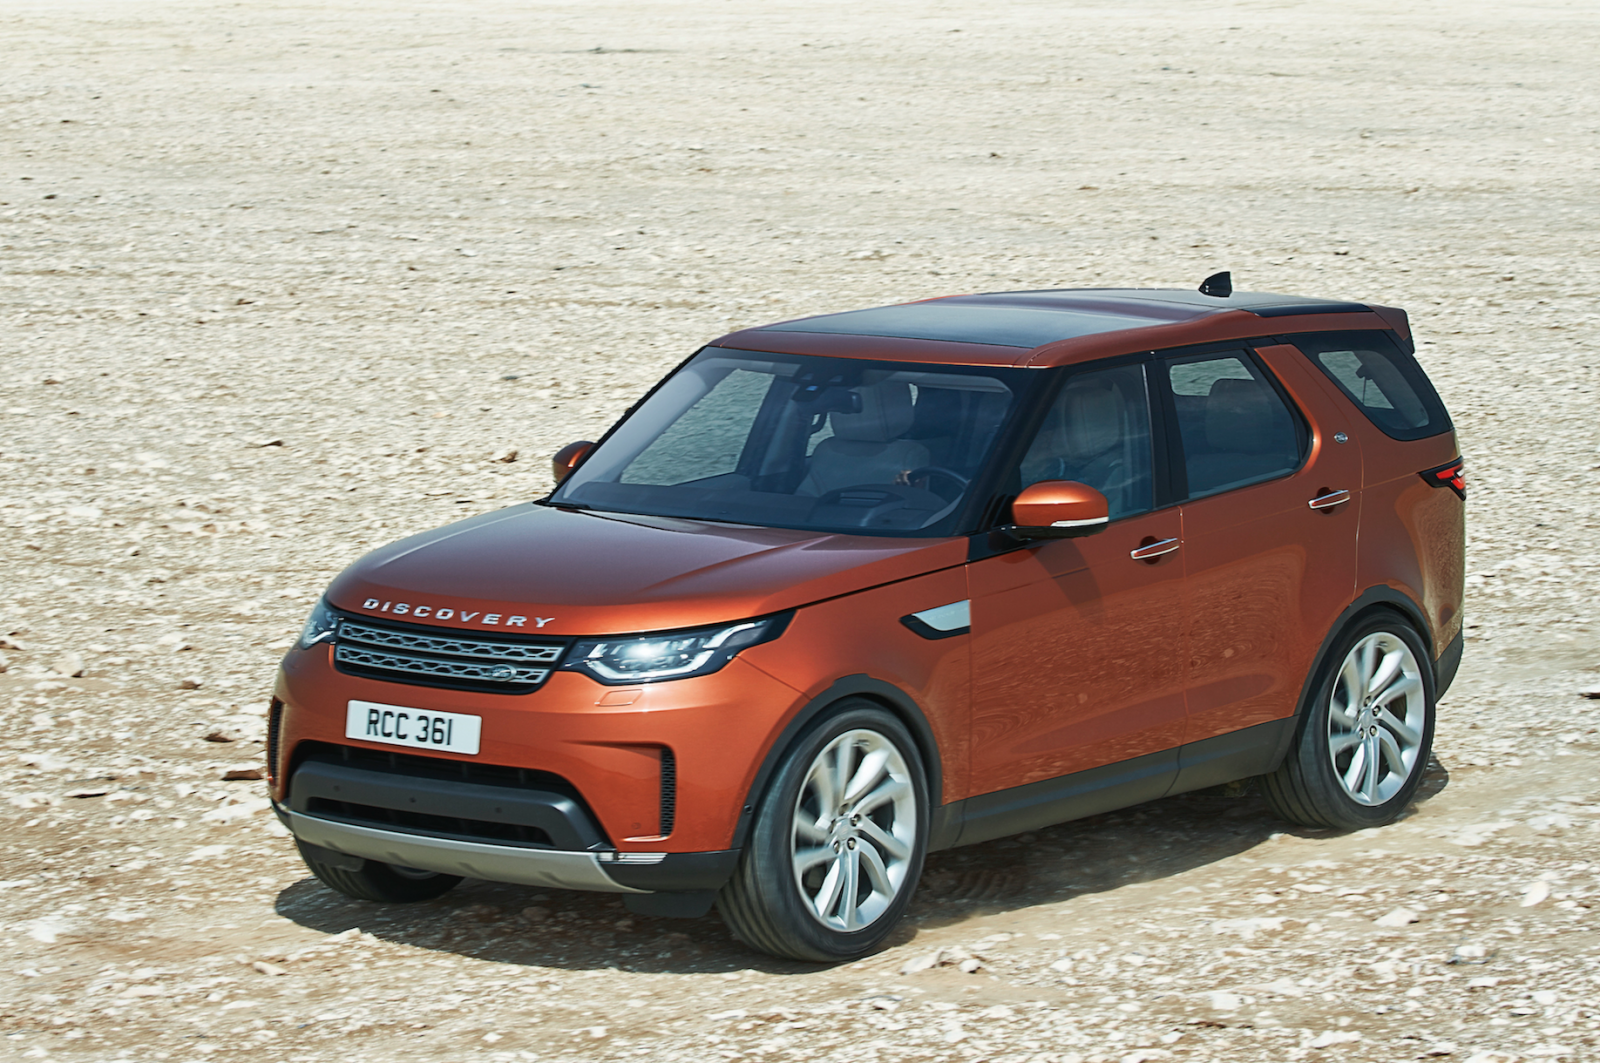 New Land Rover Discovery Revealed At Paris Motor Show